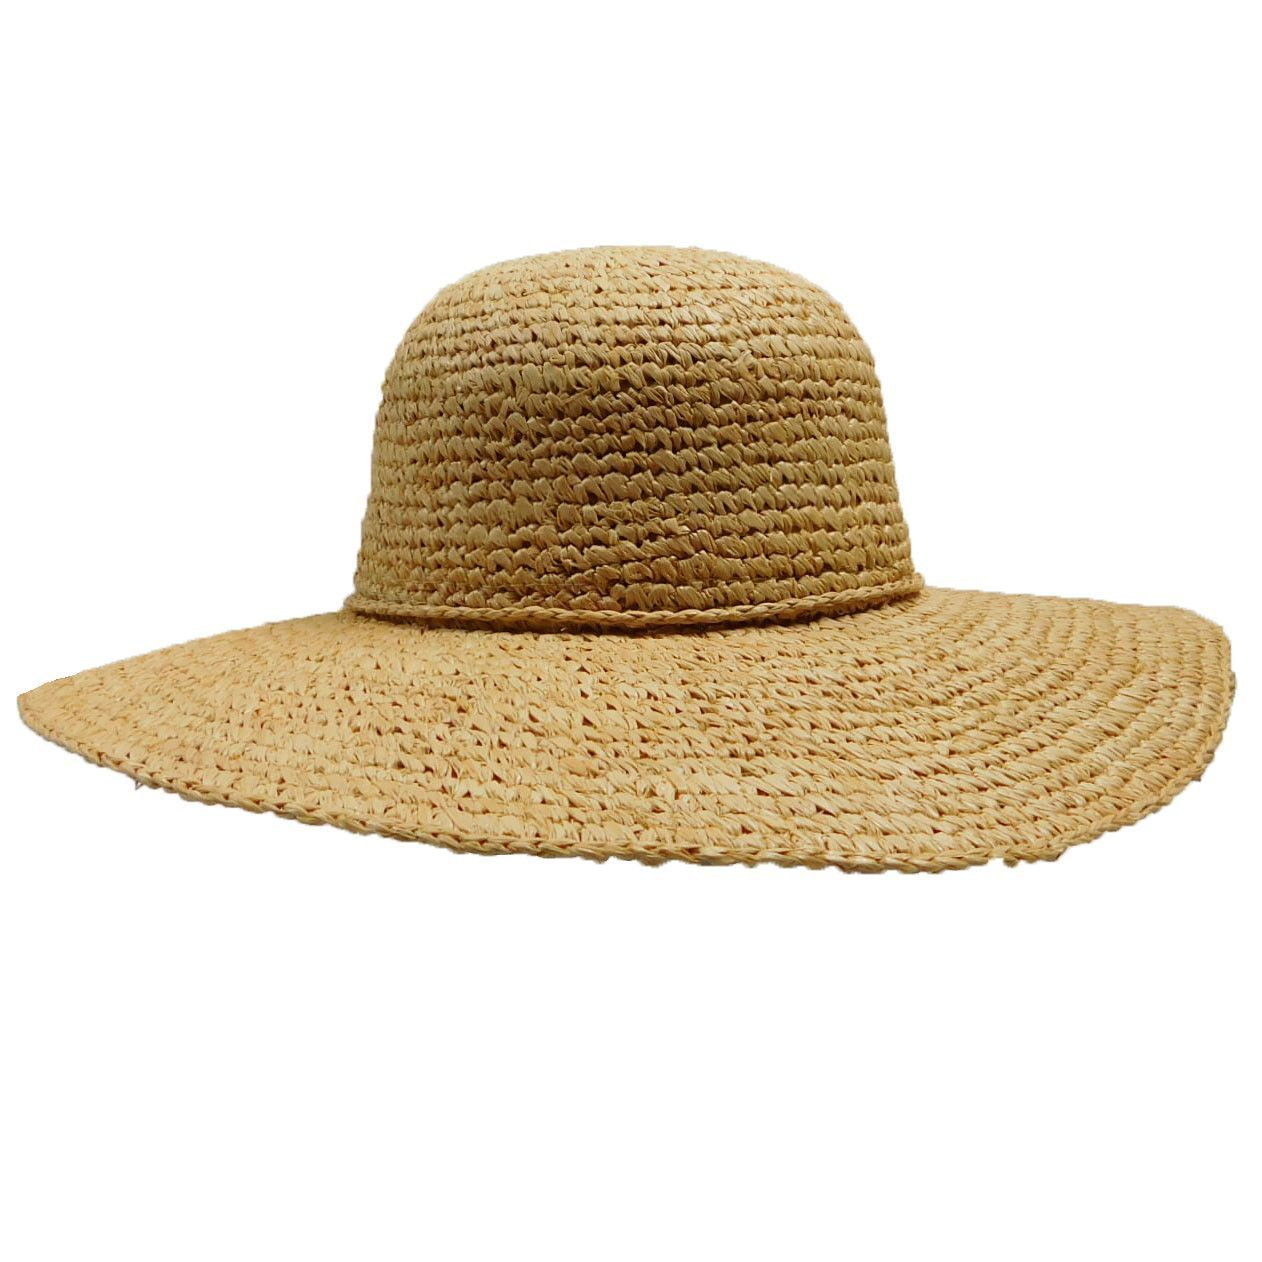 free delivery classic shoes sports shoes to6402a59 peter grimm womens sun hat tan one size fits most ...